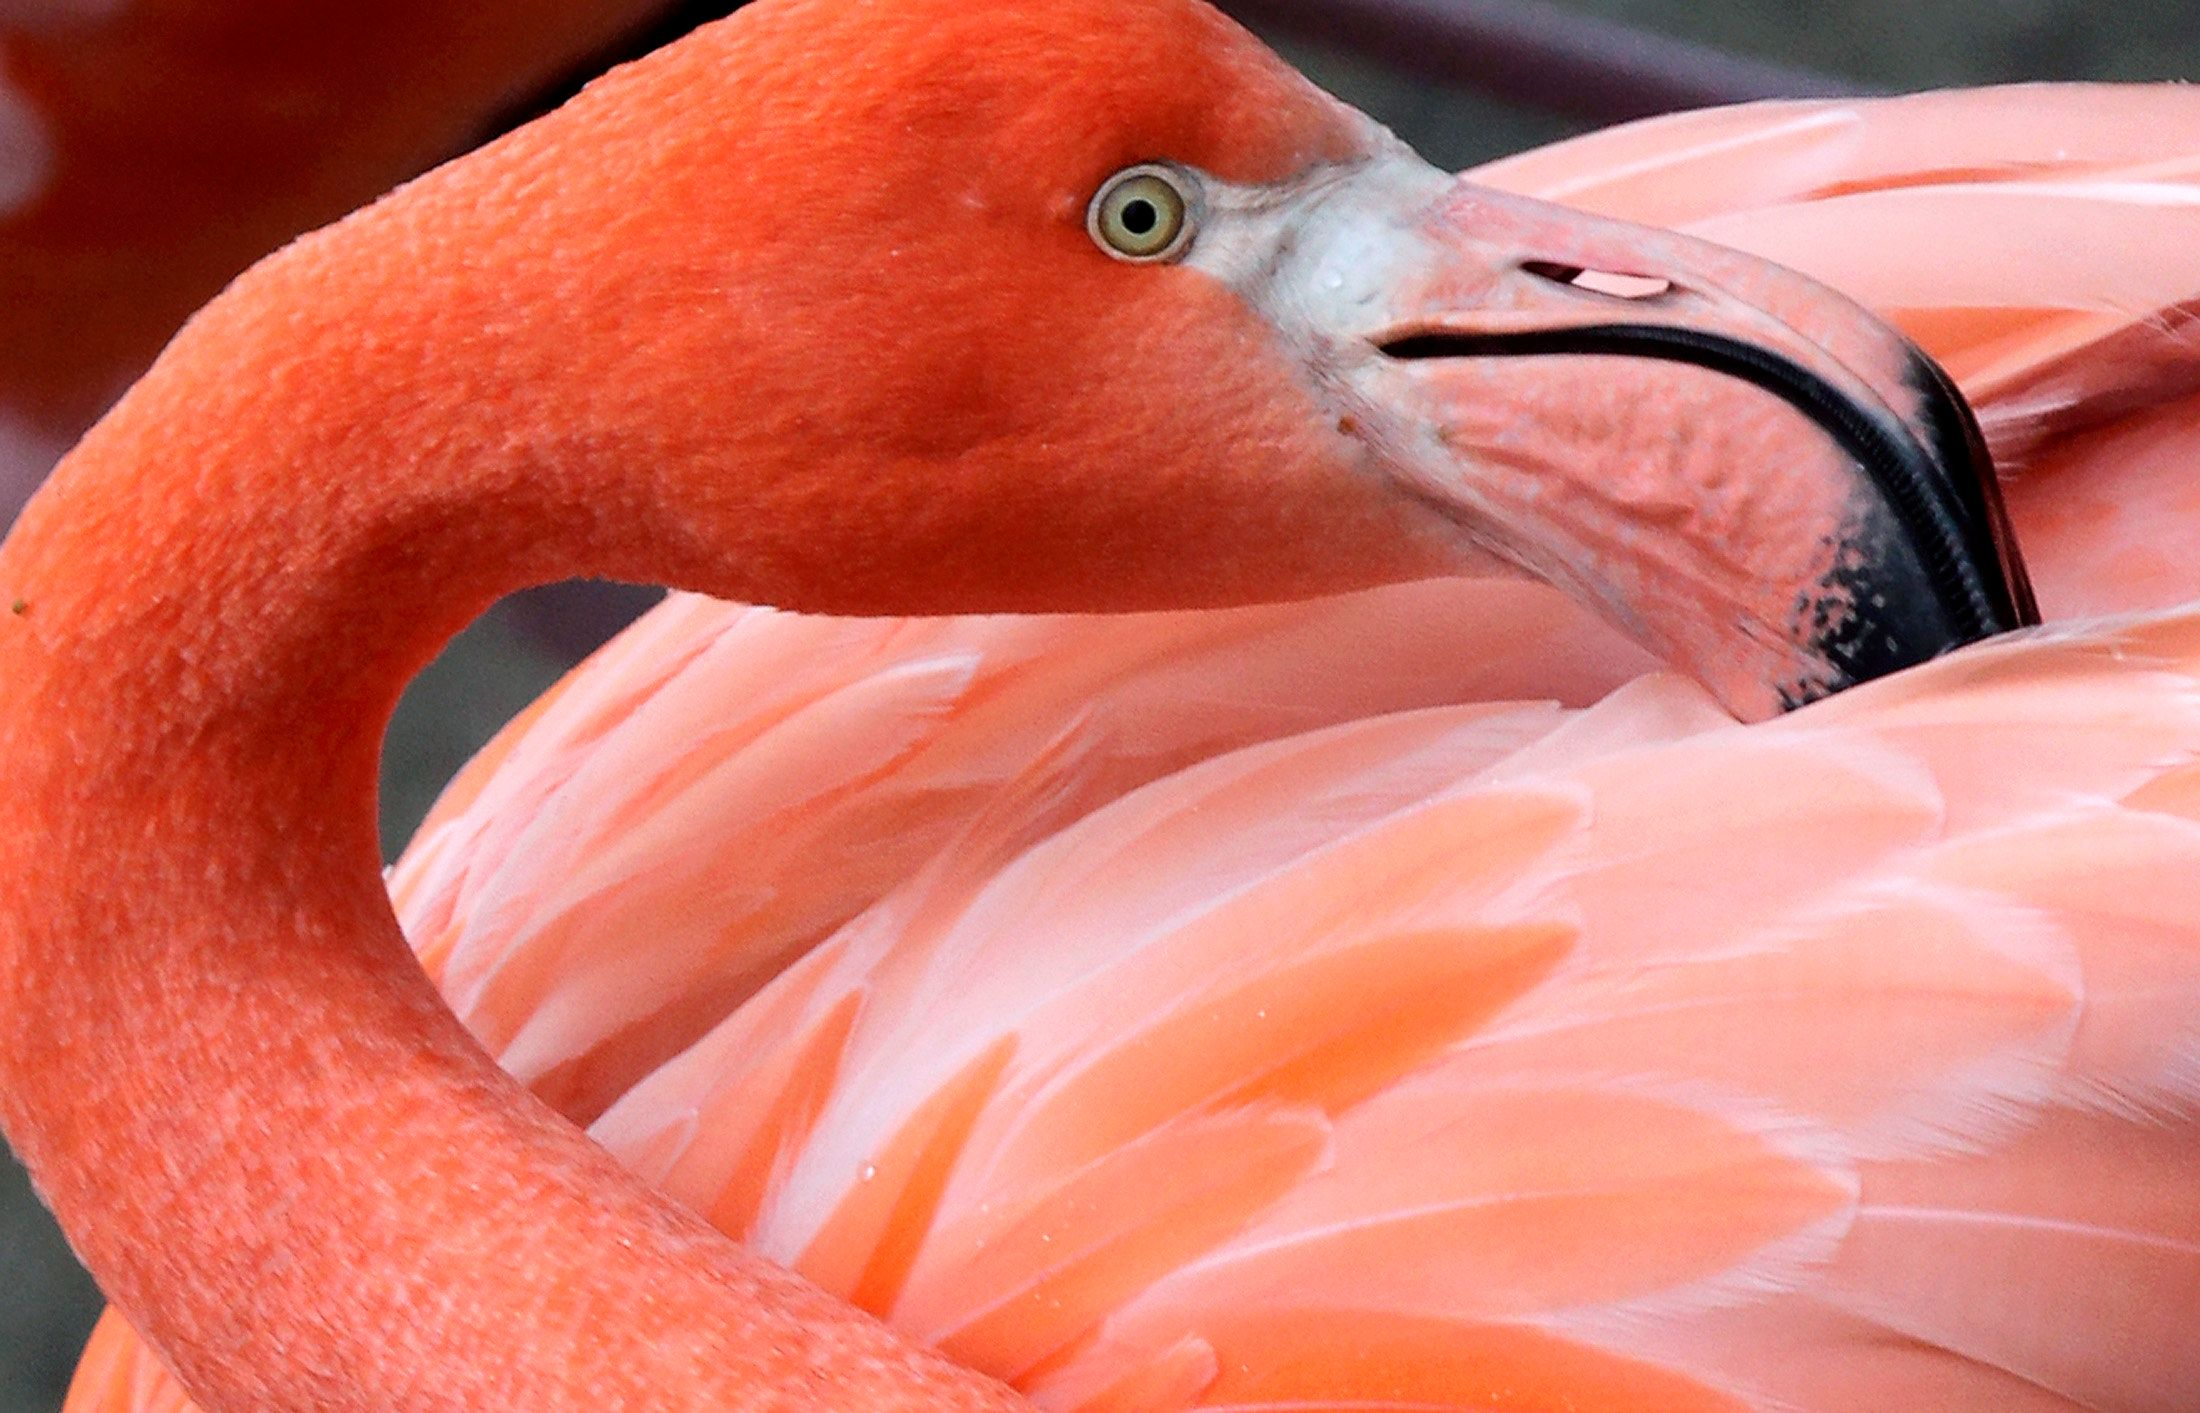 A flamingo turns its head in its enclosure at Hellabrunn Zoo in Munich December 23, 2009. REUTERS/Michael Dalder (GERMANY - Tags: ANIMALS)